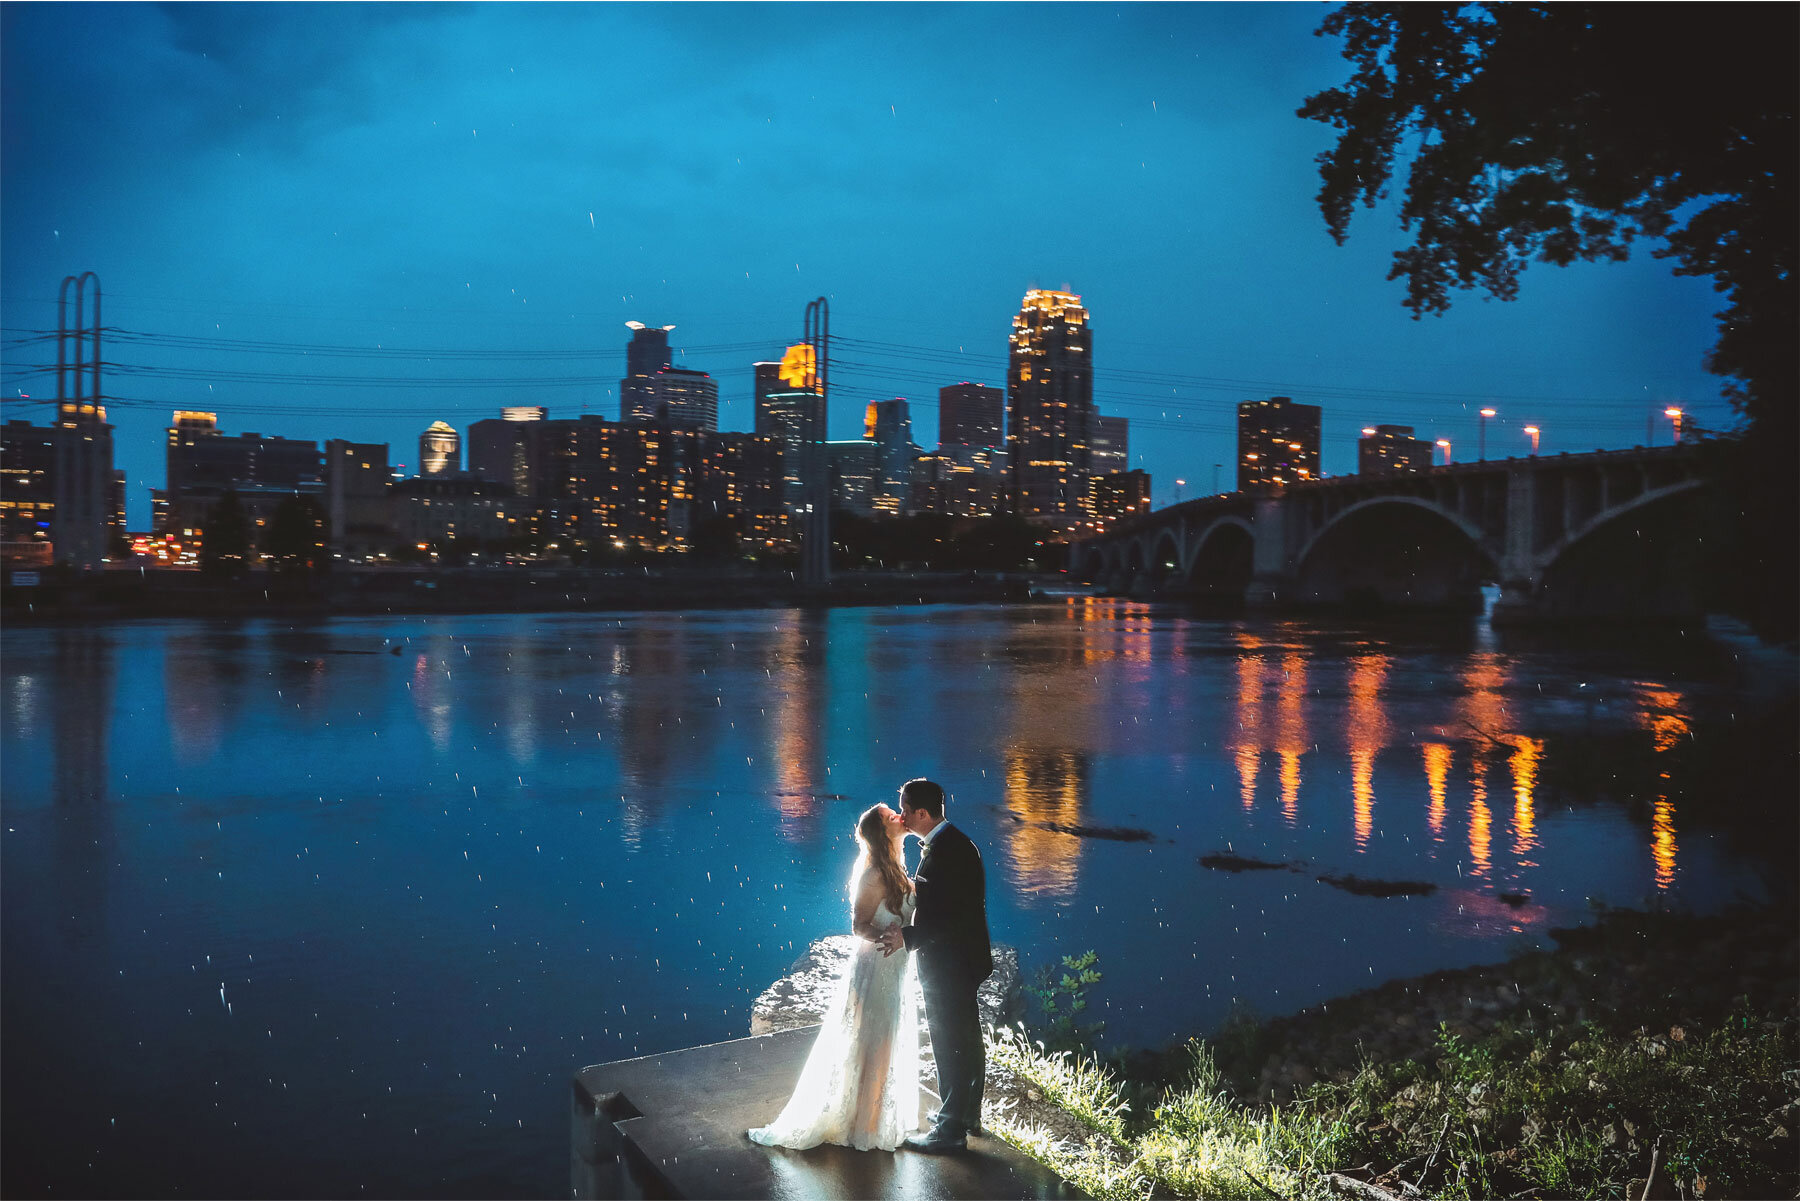 21-Minnesota-Wedding-Vick-Photography-Minneapolis-Skyline-Outdoor-Night-Amy-and-Avi.jpg